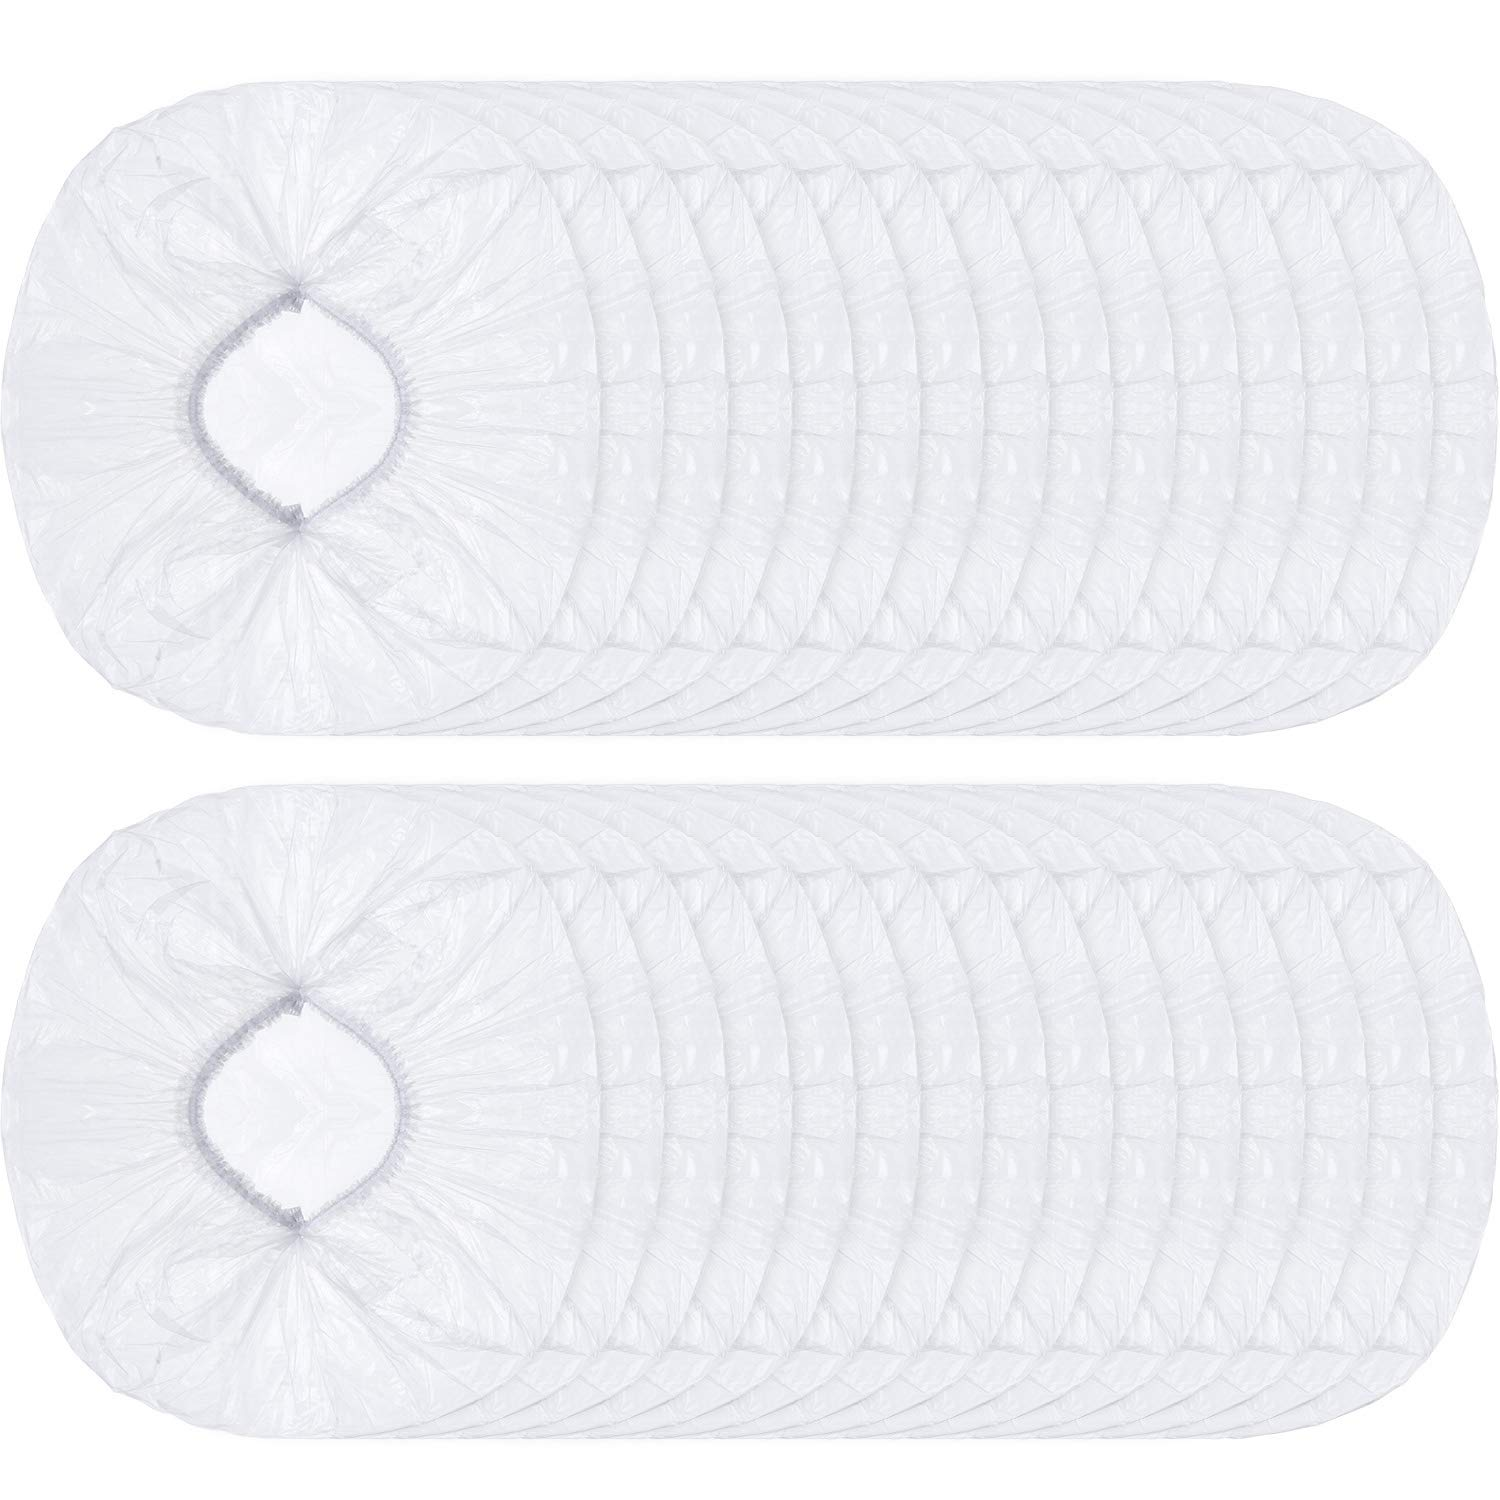 Boao Hair Processing Caps Clear Disposable Shower Caps Plastic Bath Elastic Caps for Water-proof Use or Hair Salon